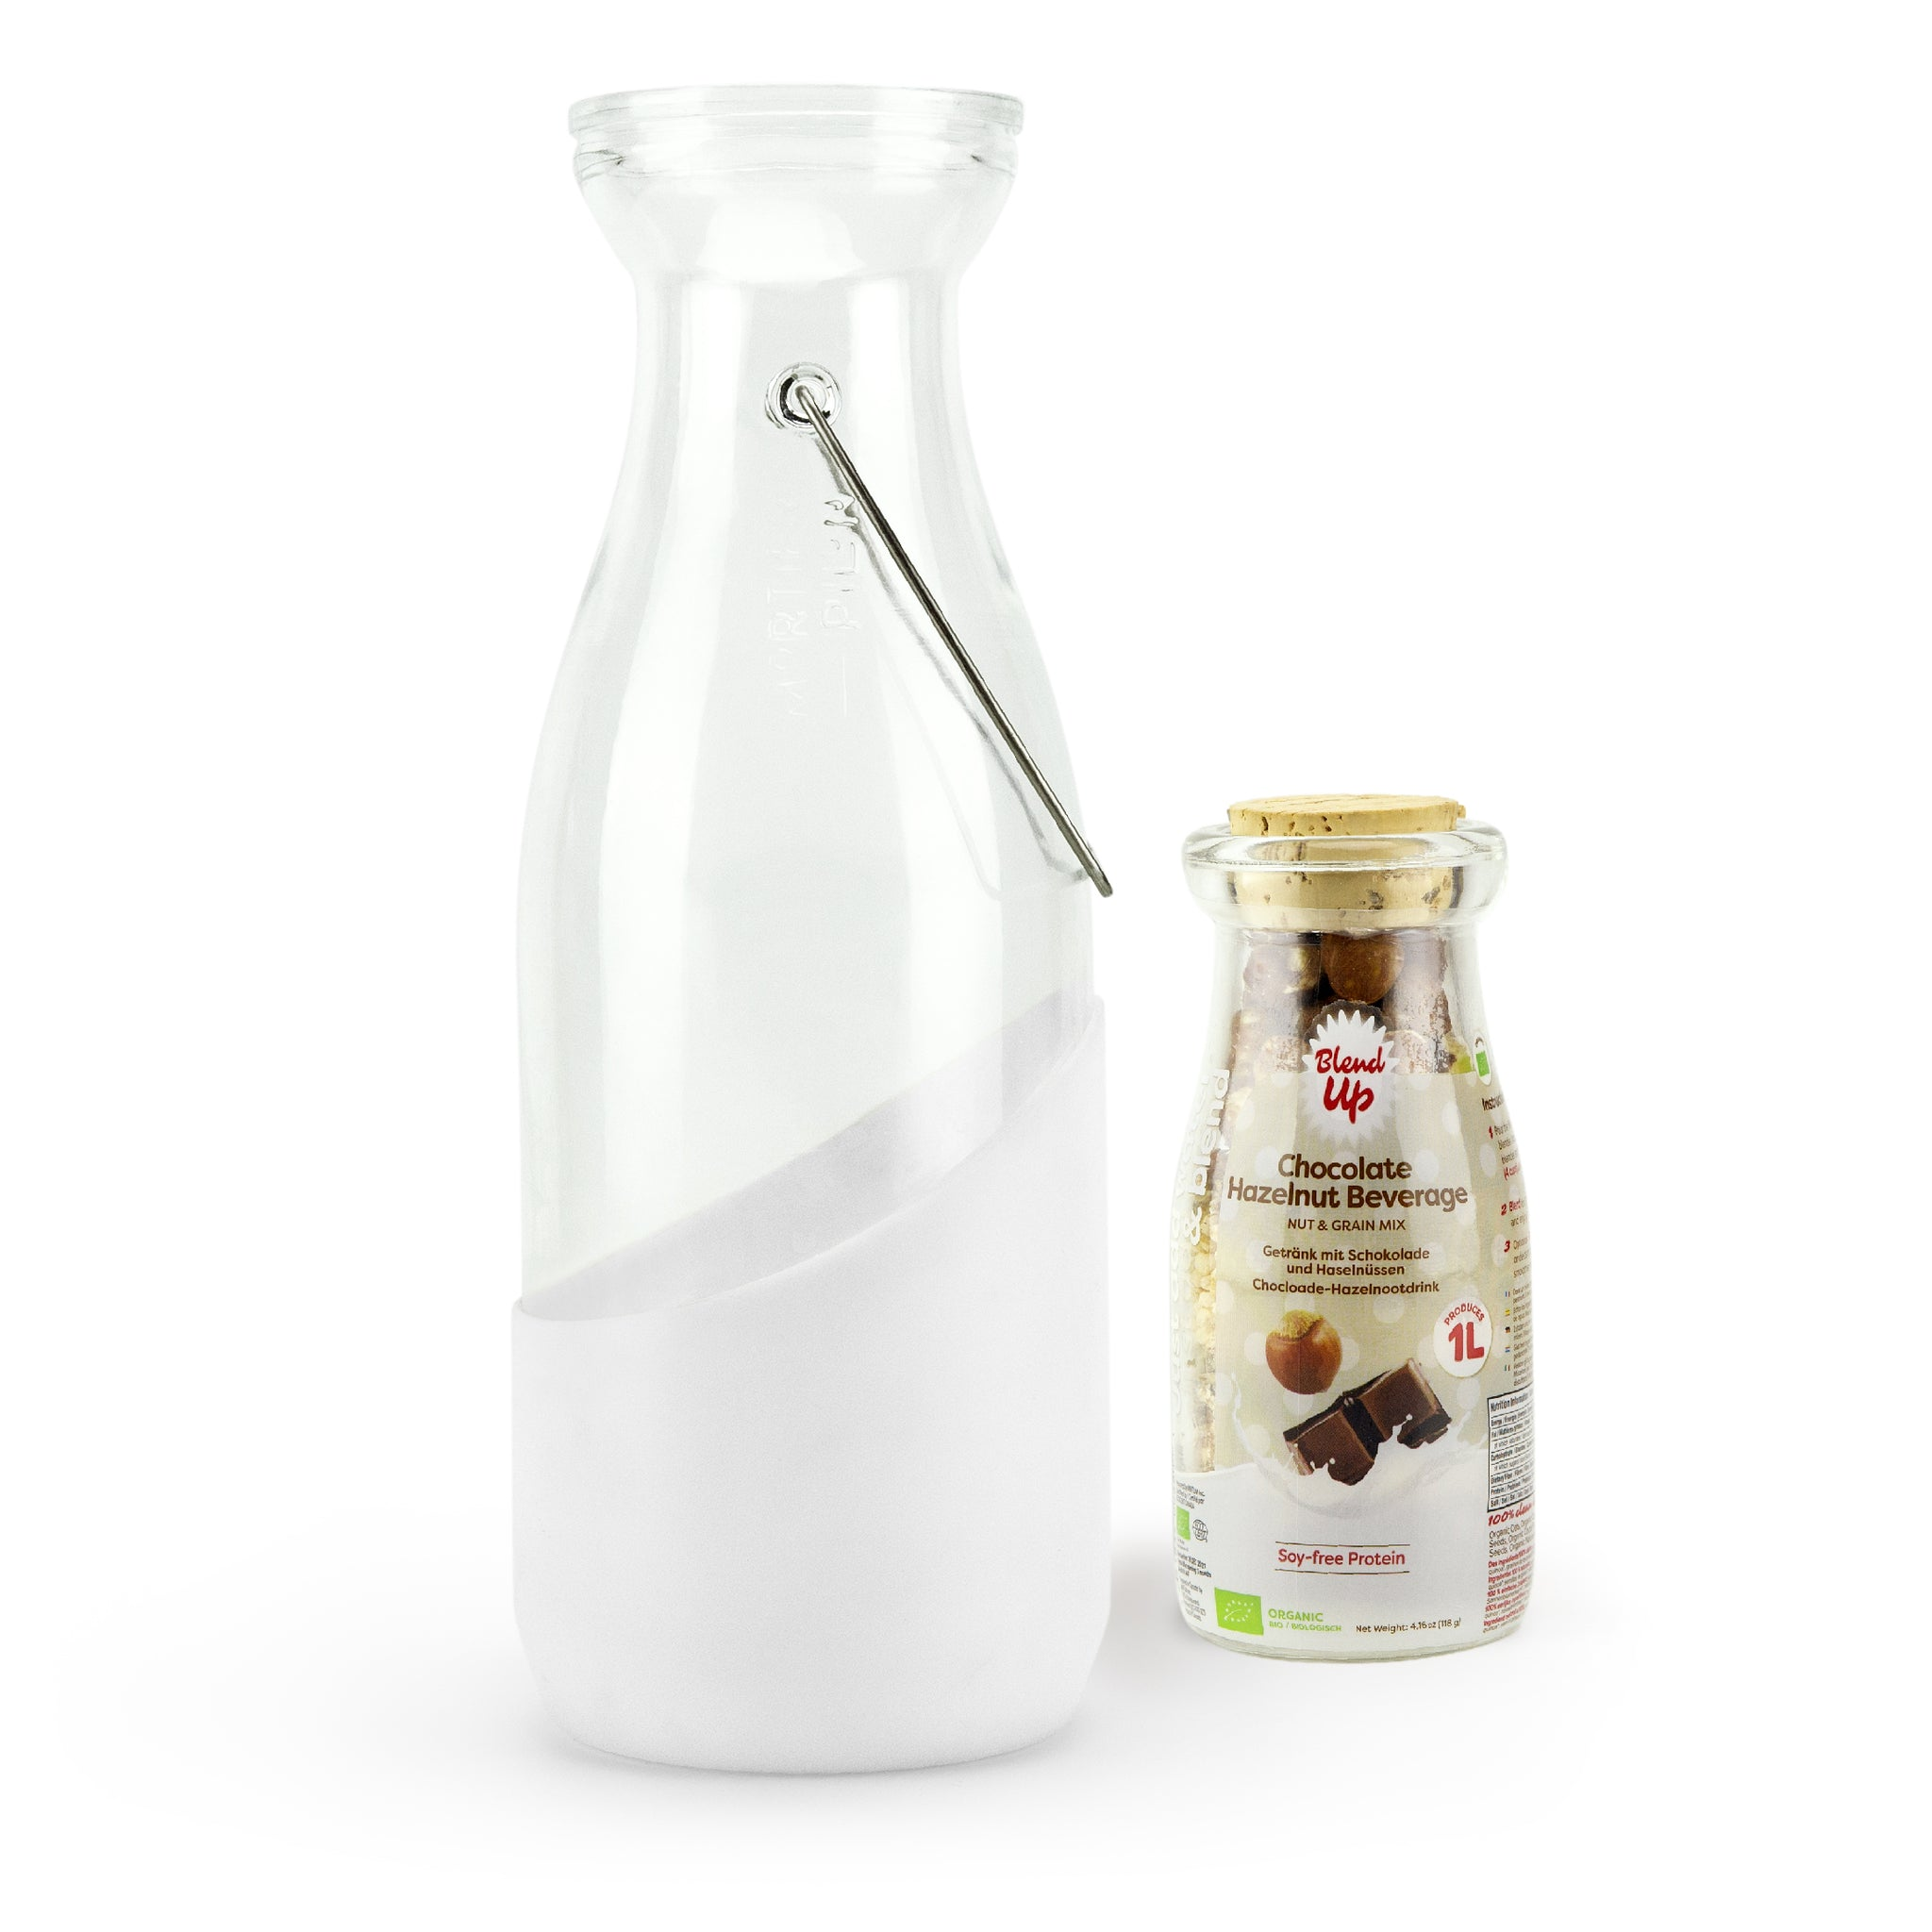 Blend Up Glass Milk Bottle + FREE Choco nut Mix